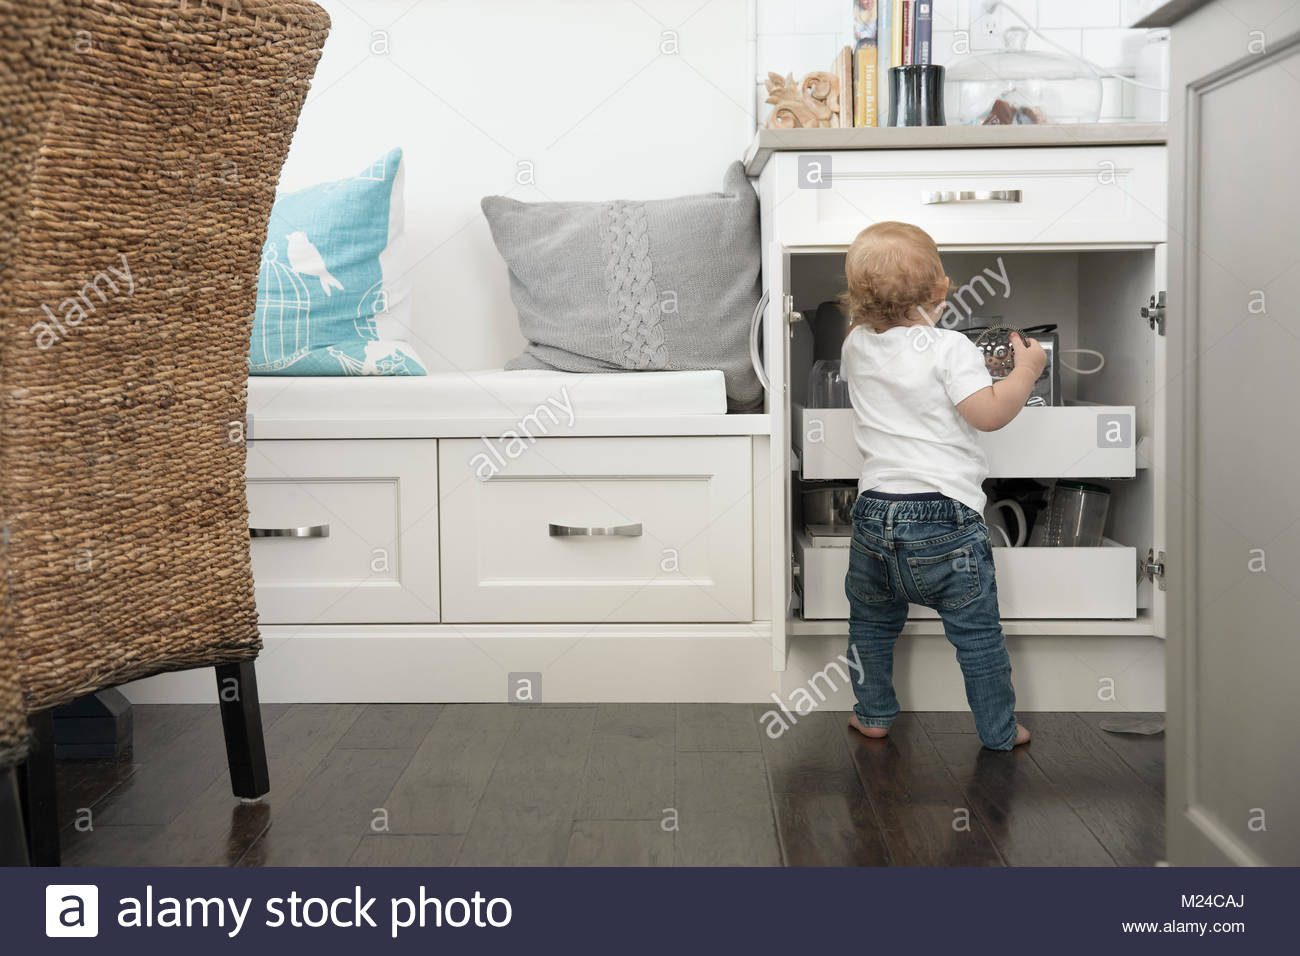 Curious baby boy reaching in kitchen cupboard - Stock Image